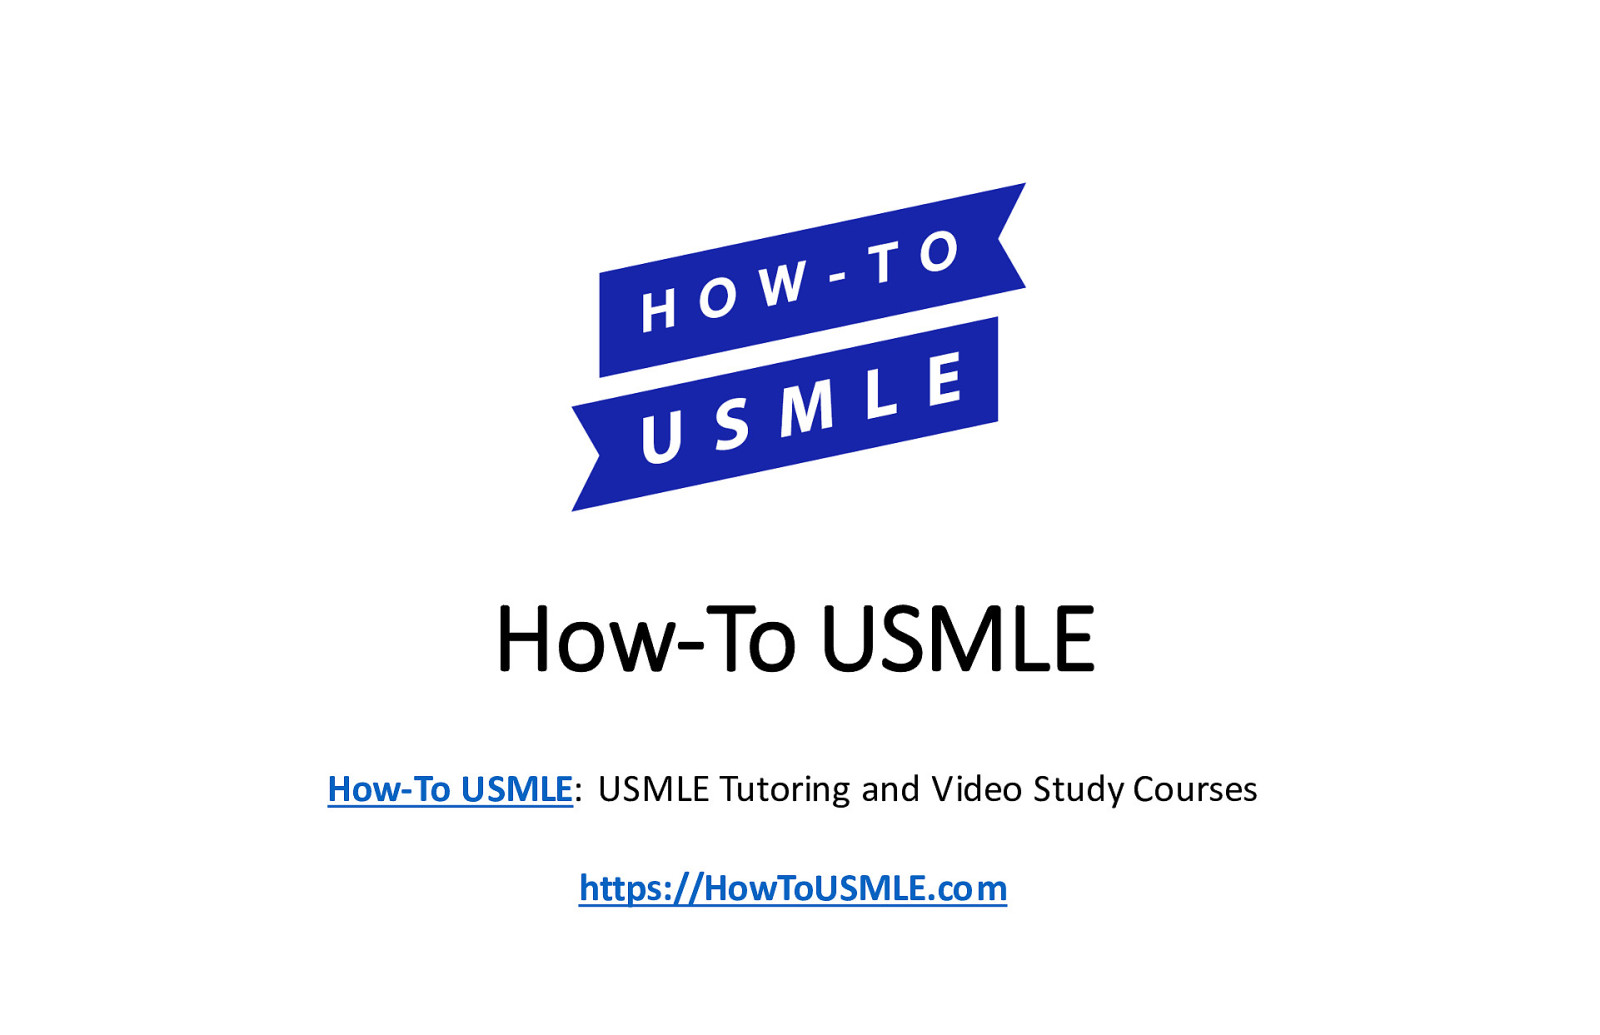 How-To USMLE: Tutoring & Study Course